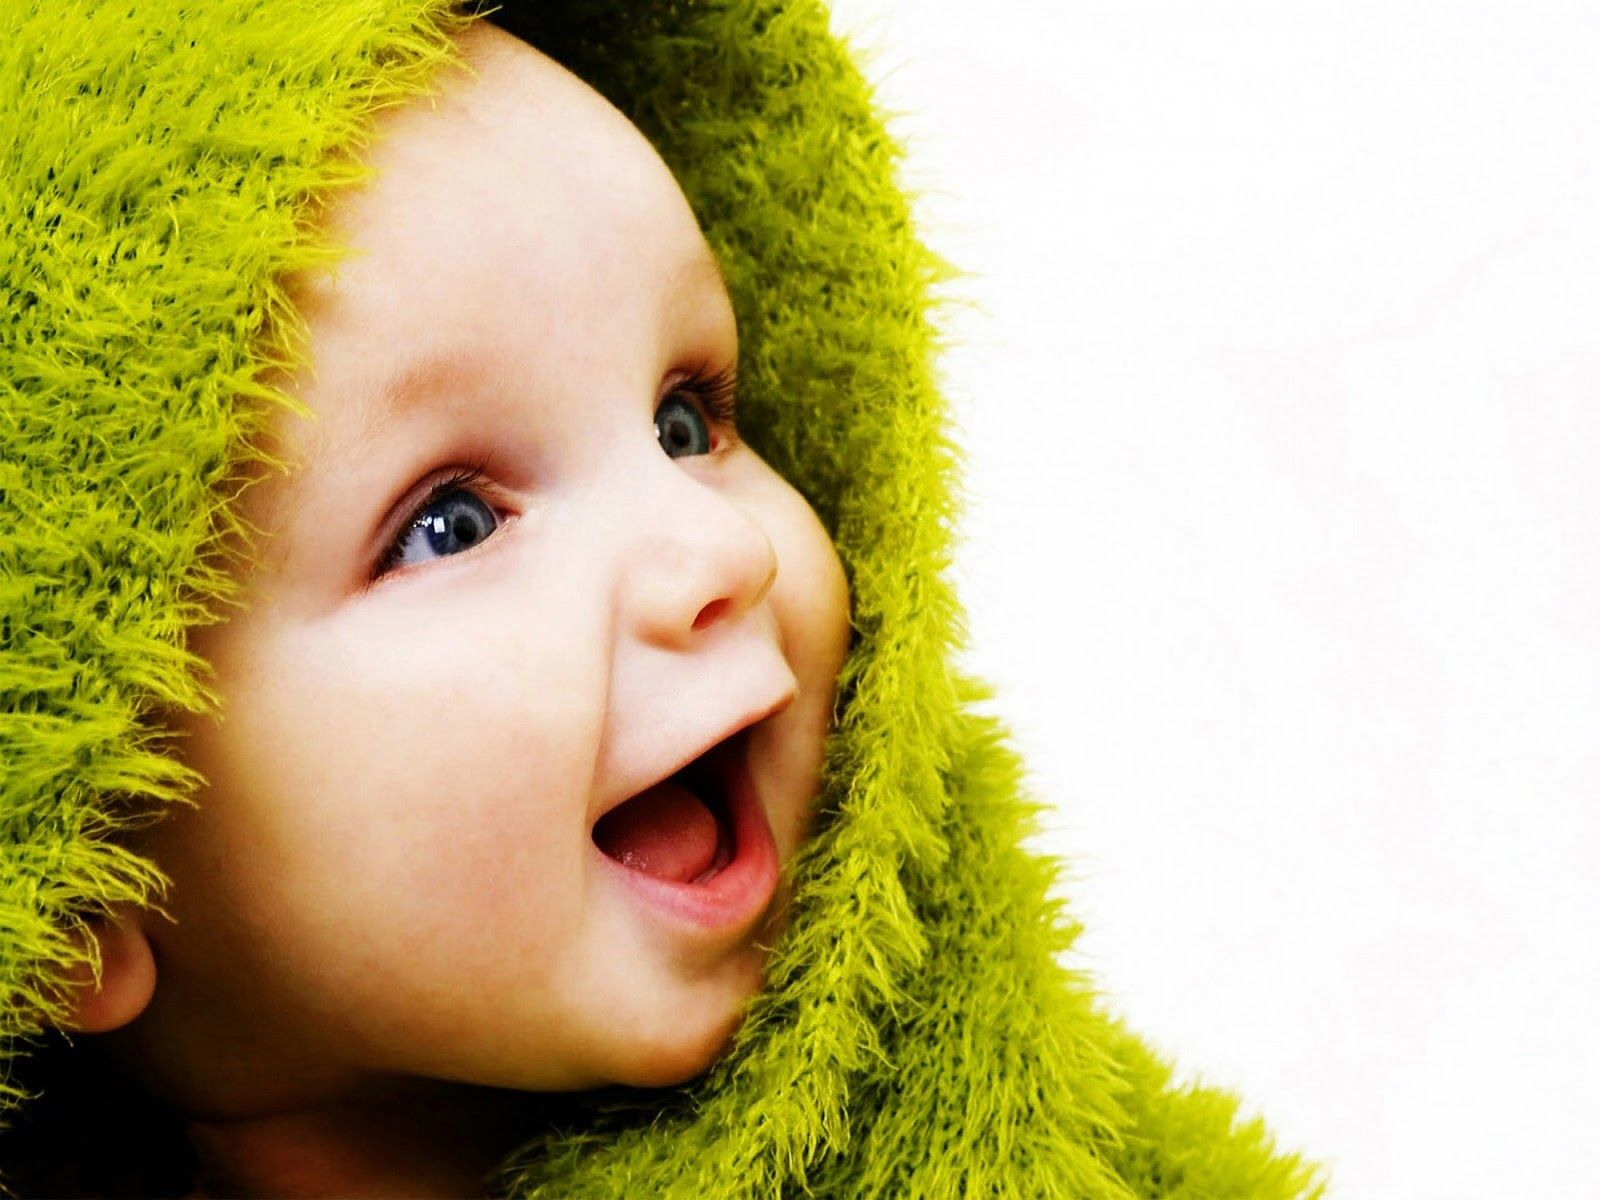 cute baby wallpapers hd photos 2527 wallpaper hdwallphotos hd